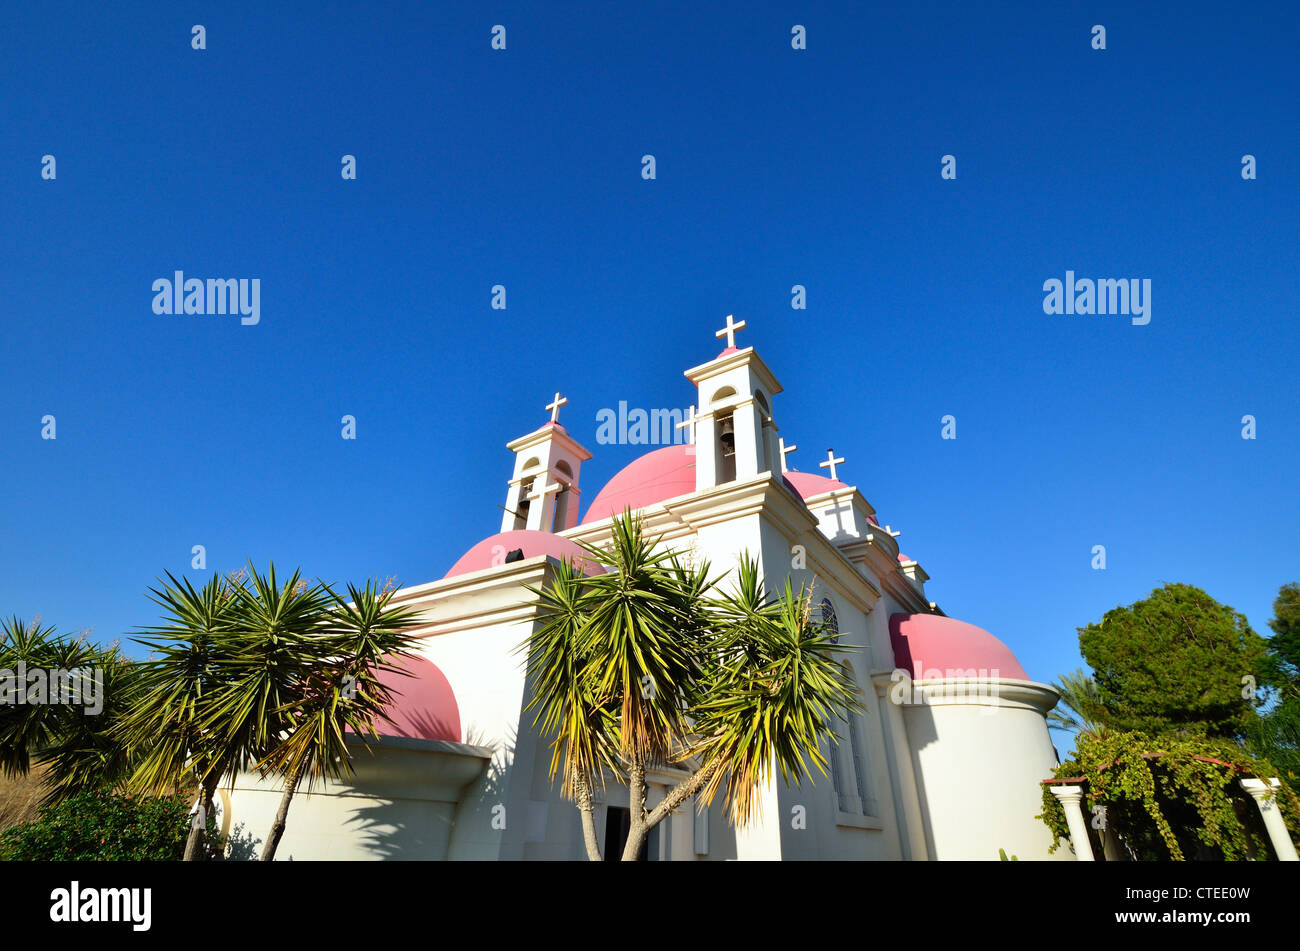 The Church of the Seven Apostles - Greek Orthodox church located at the shore of the Sea of Galilee near Capernaum, Stock Photo